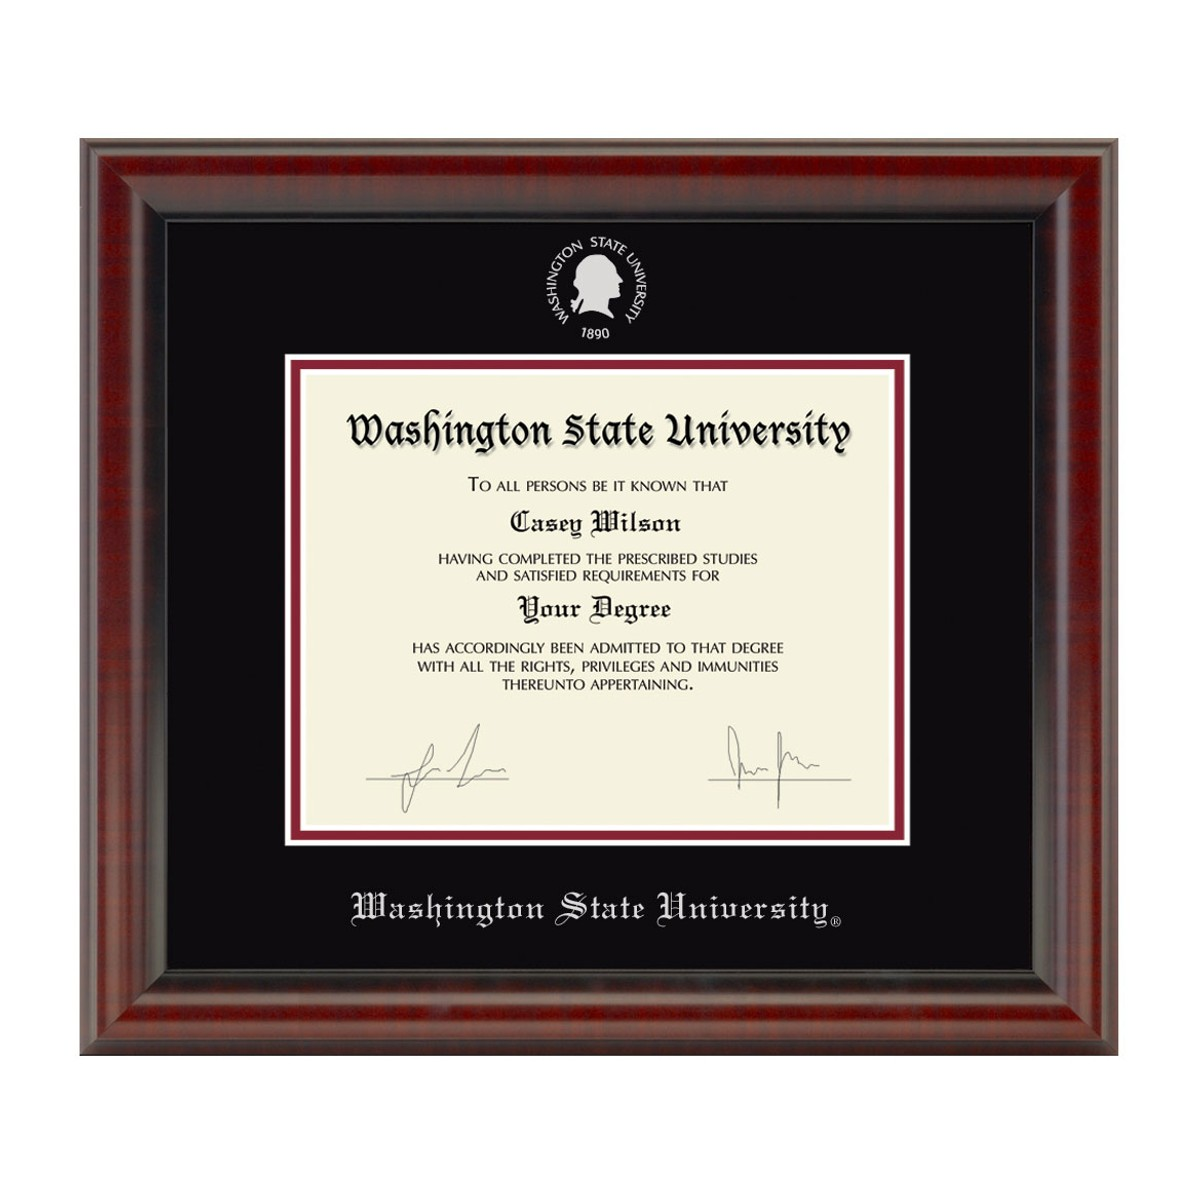 Official Washington State University Diploma Frame The